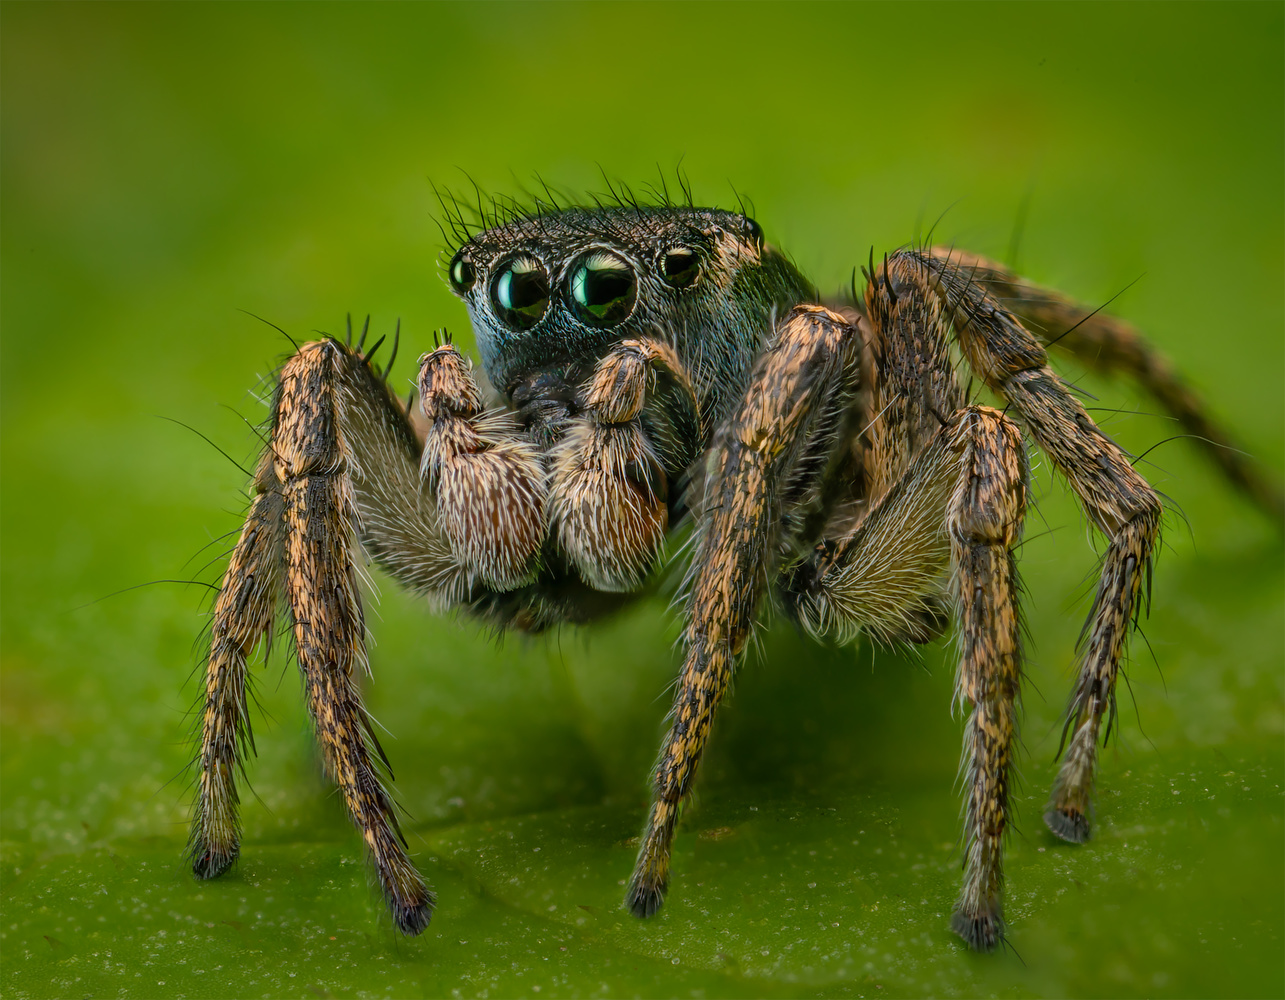 The Adorable Jumper by Liza Rock